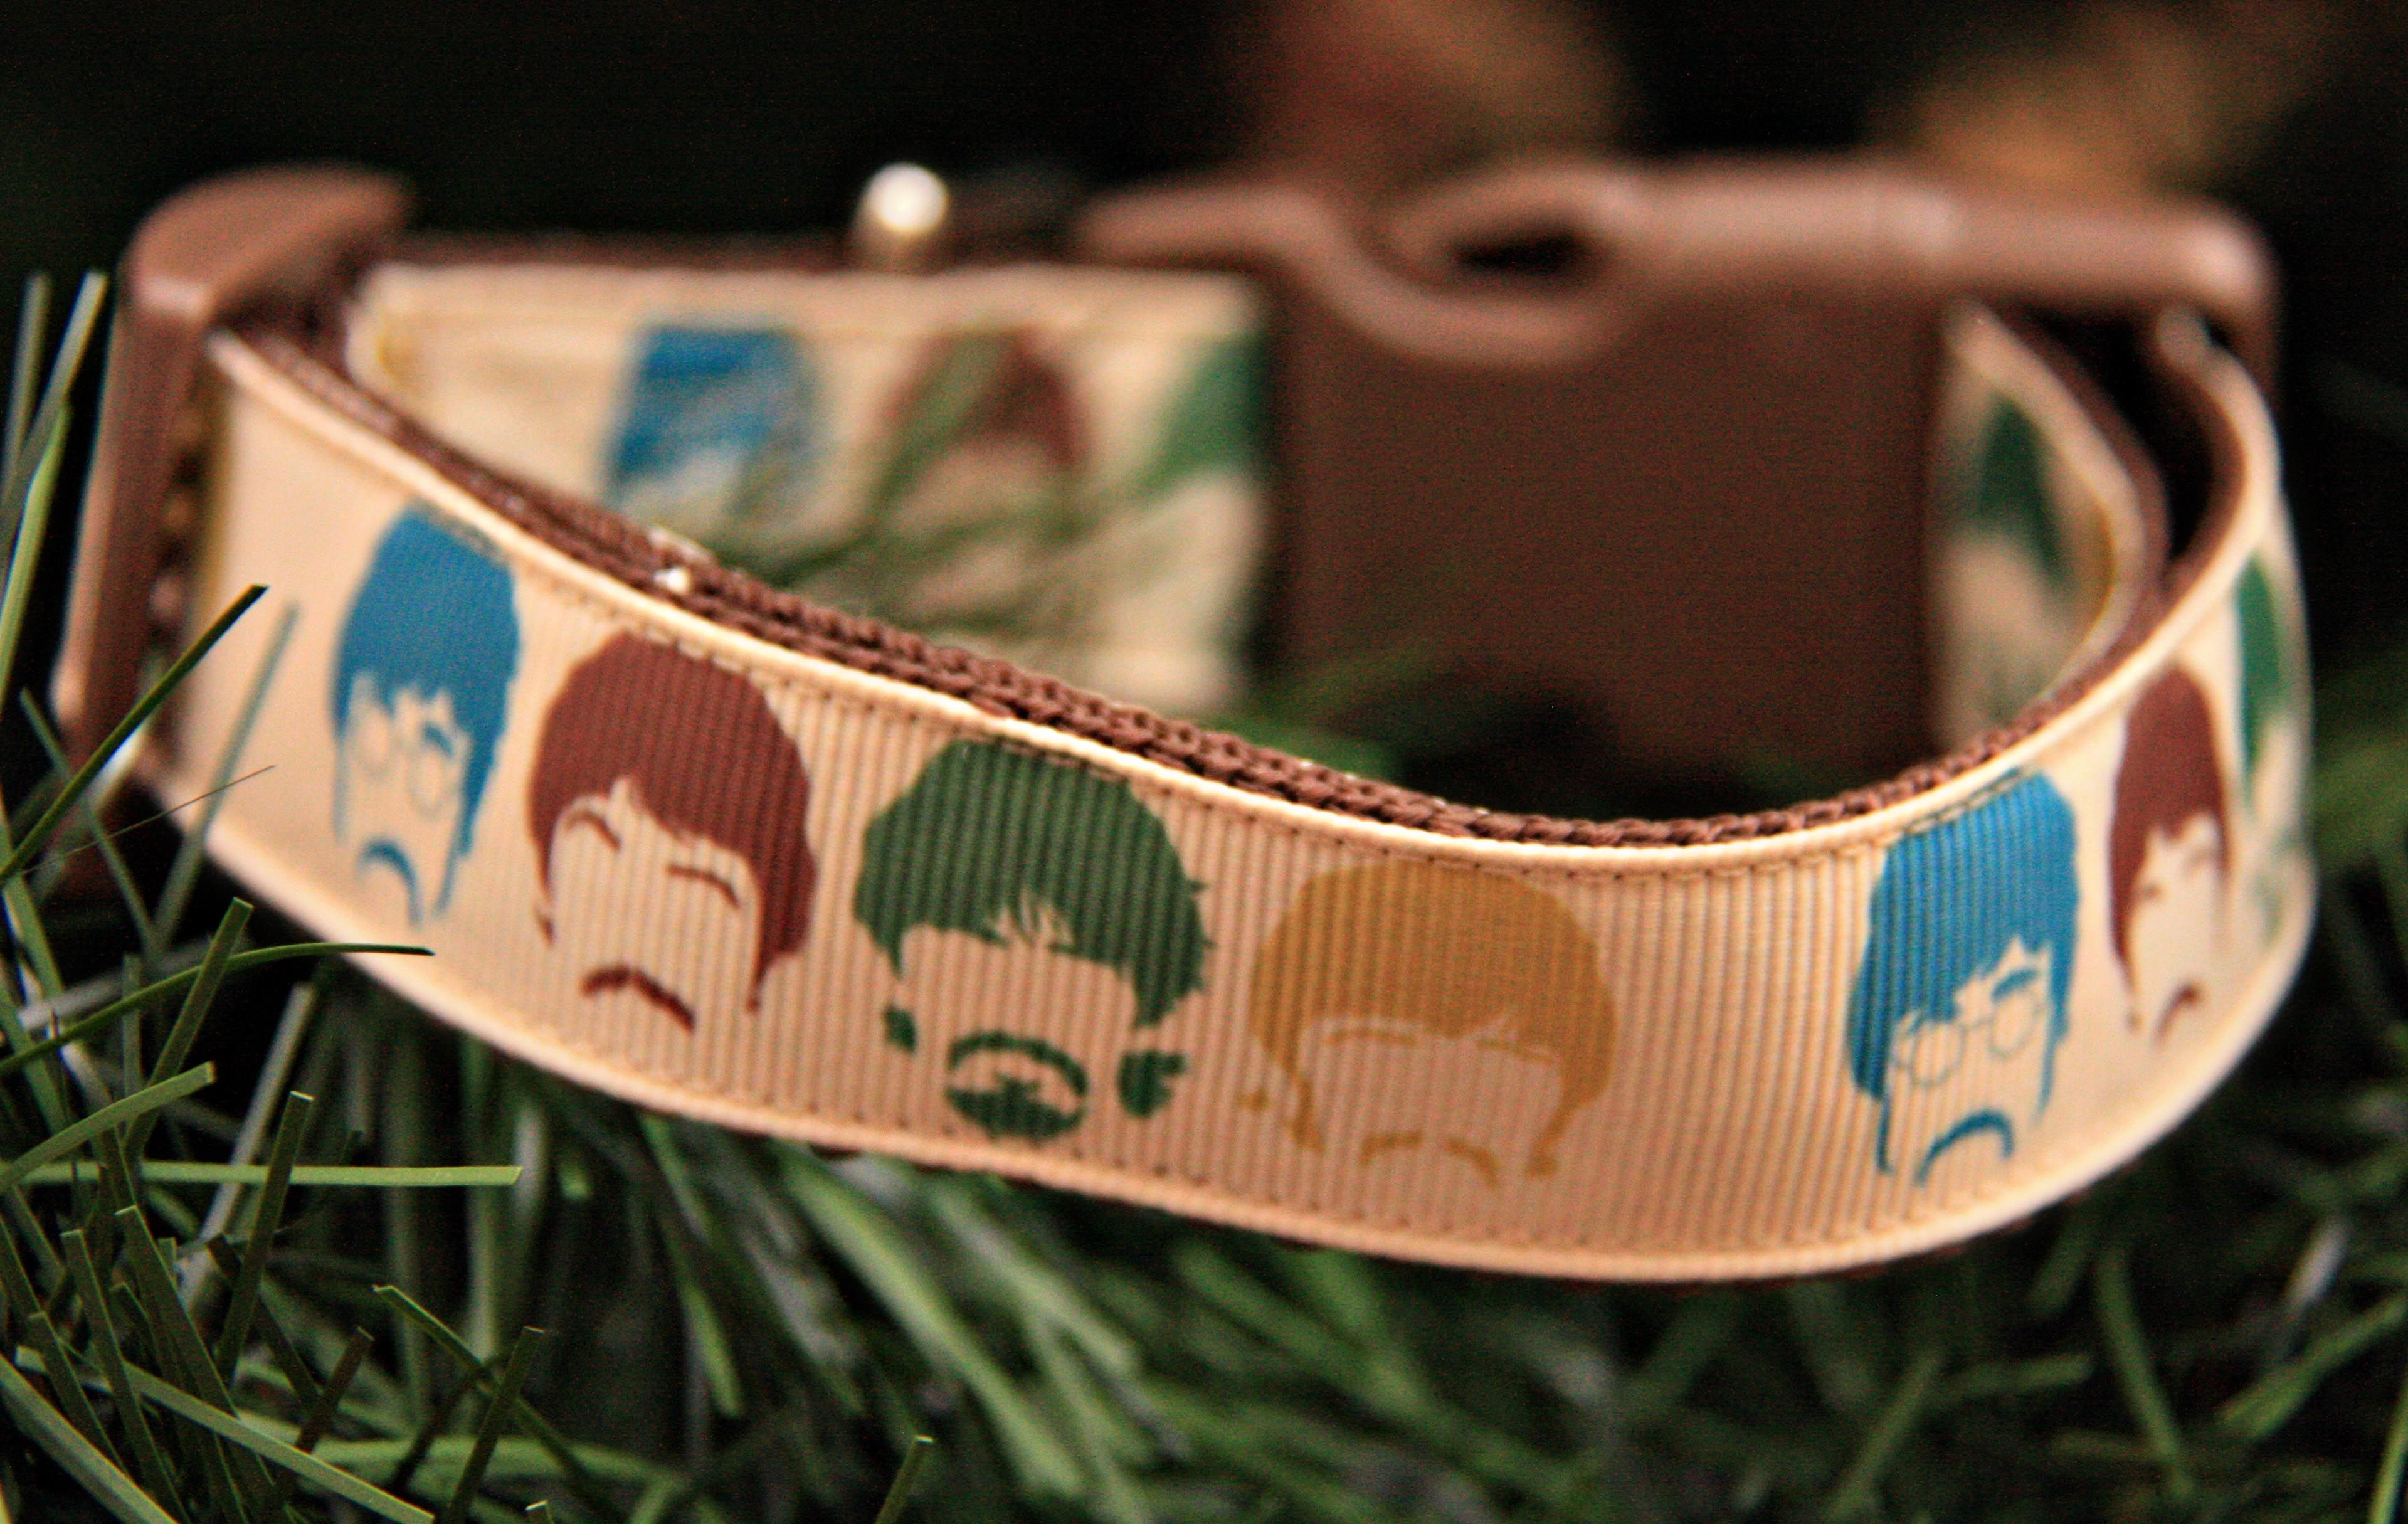 Beatles Inspired 1 Dog Collar 1500 Find Bonzai Gifts On